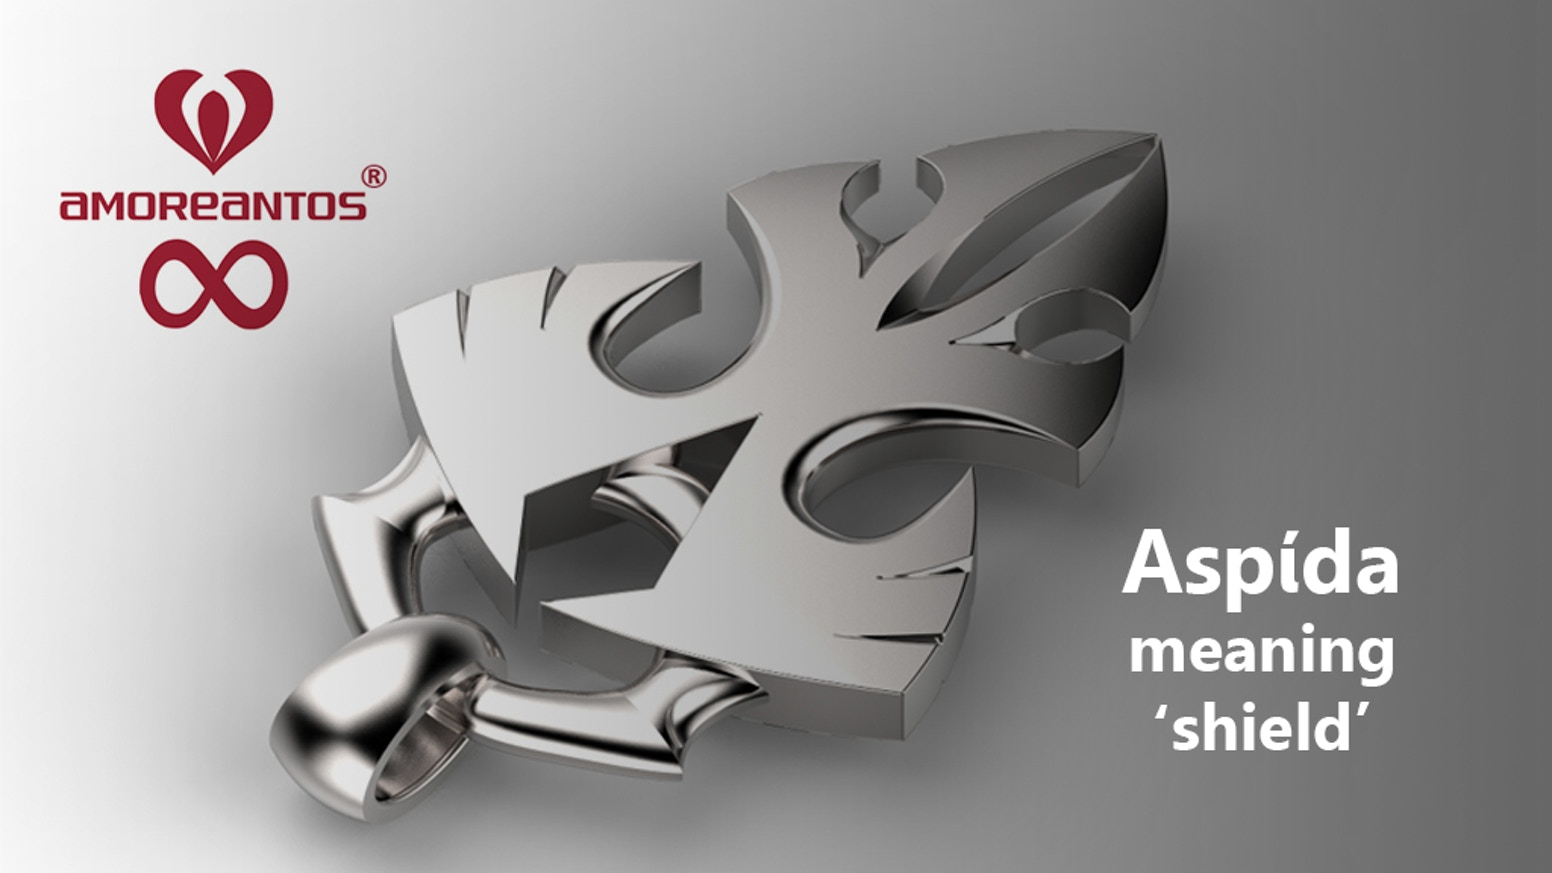 Edgy silver Aspίda pendant design meaning 'shield' by Amoreantos - Designers of futuristic jewellery for spirits untamed.